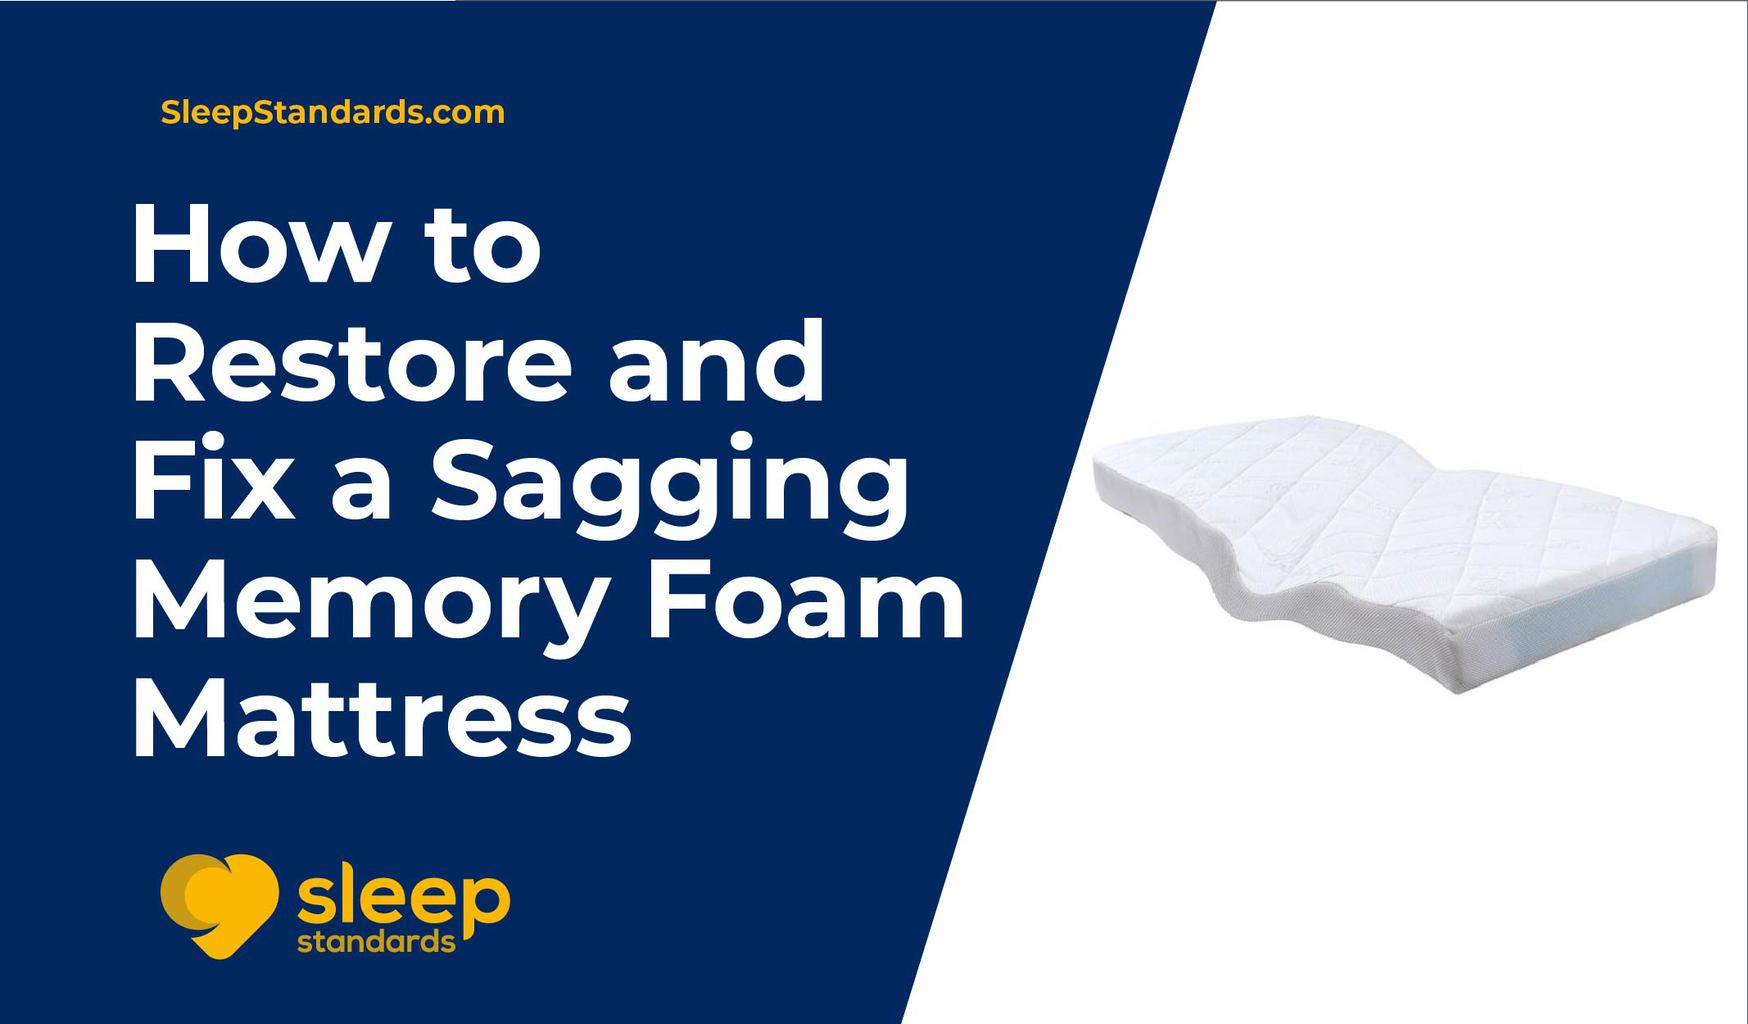 How to Restore and Fix a Sagging Memory Foam Mattress